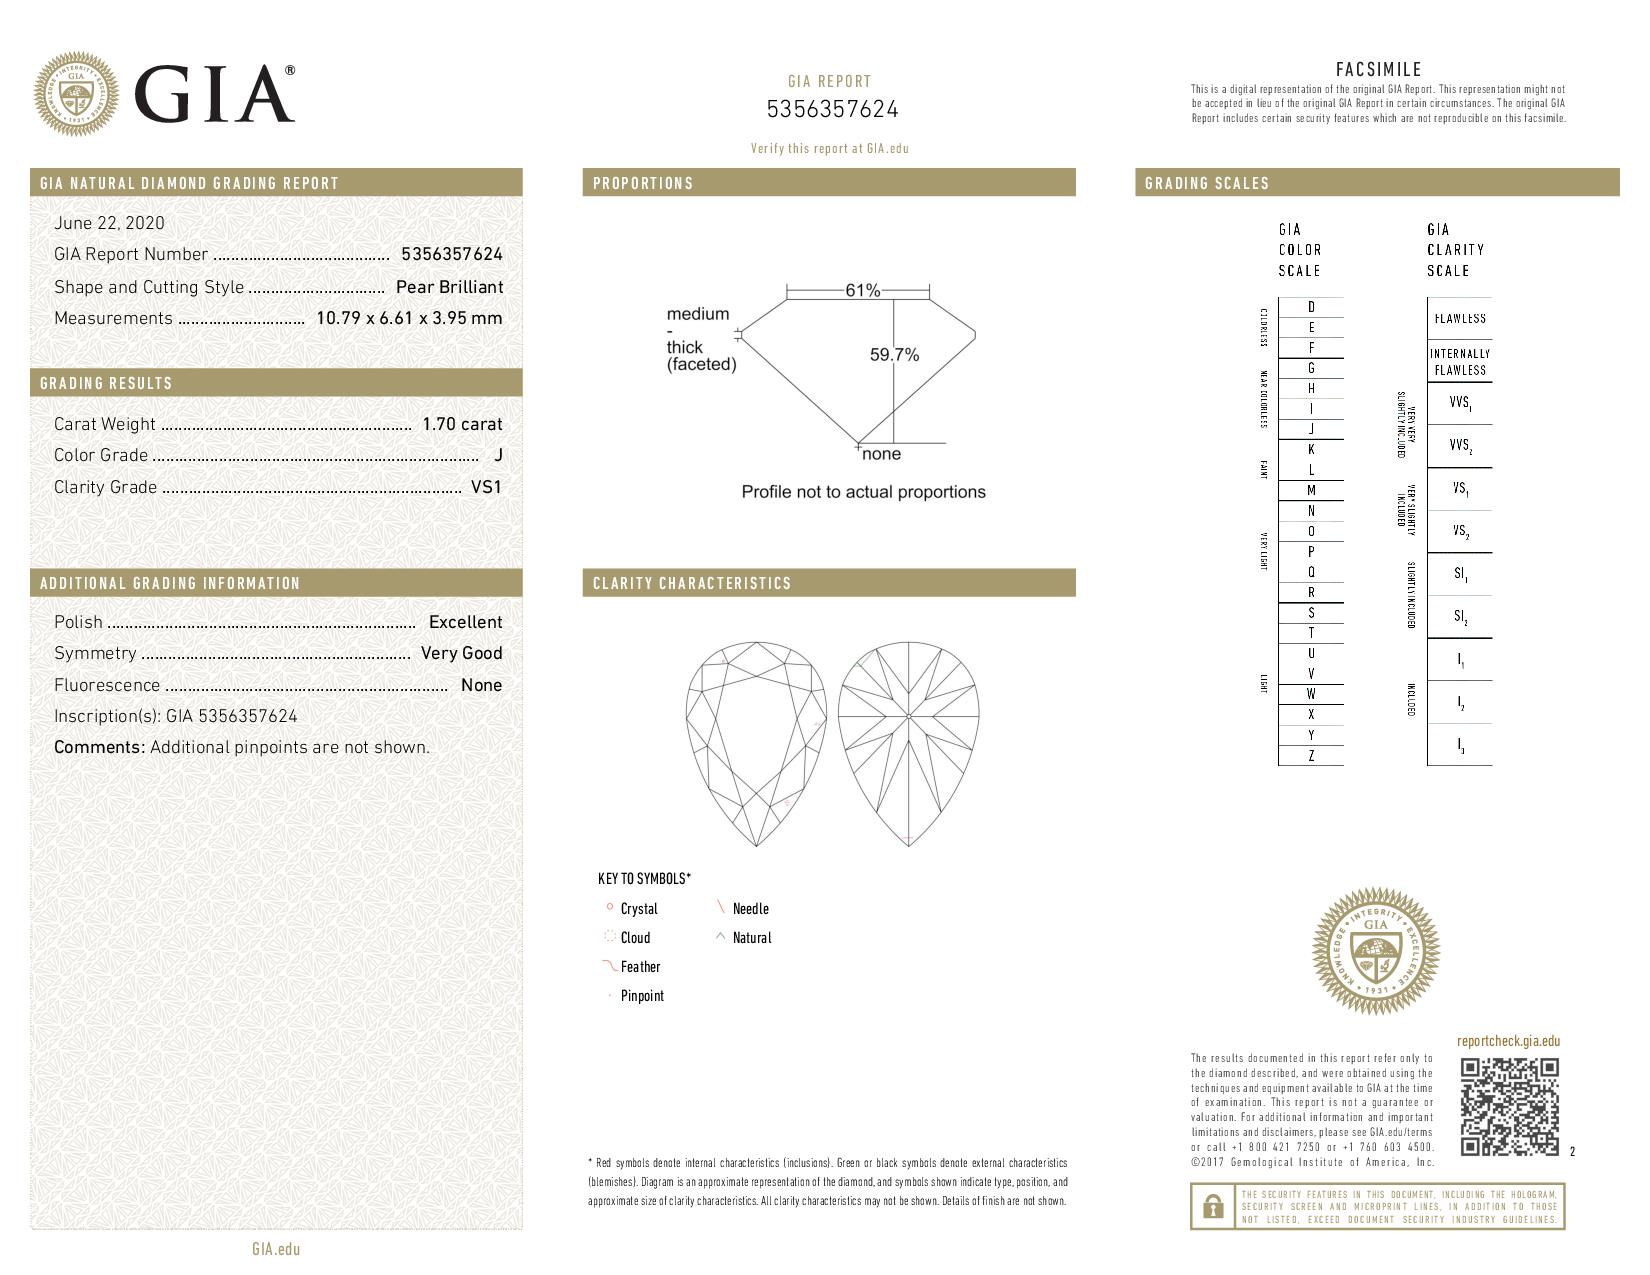 This is a 1.70 carat pear shape, J color, VS1 clarity natural diamond accompanied by a GIA grading report.